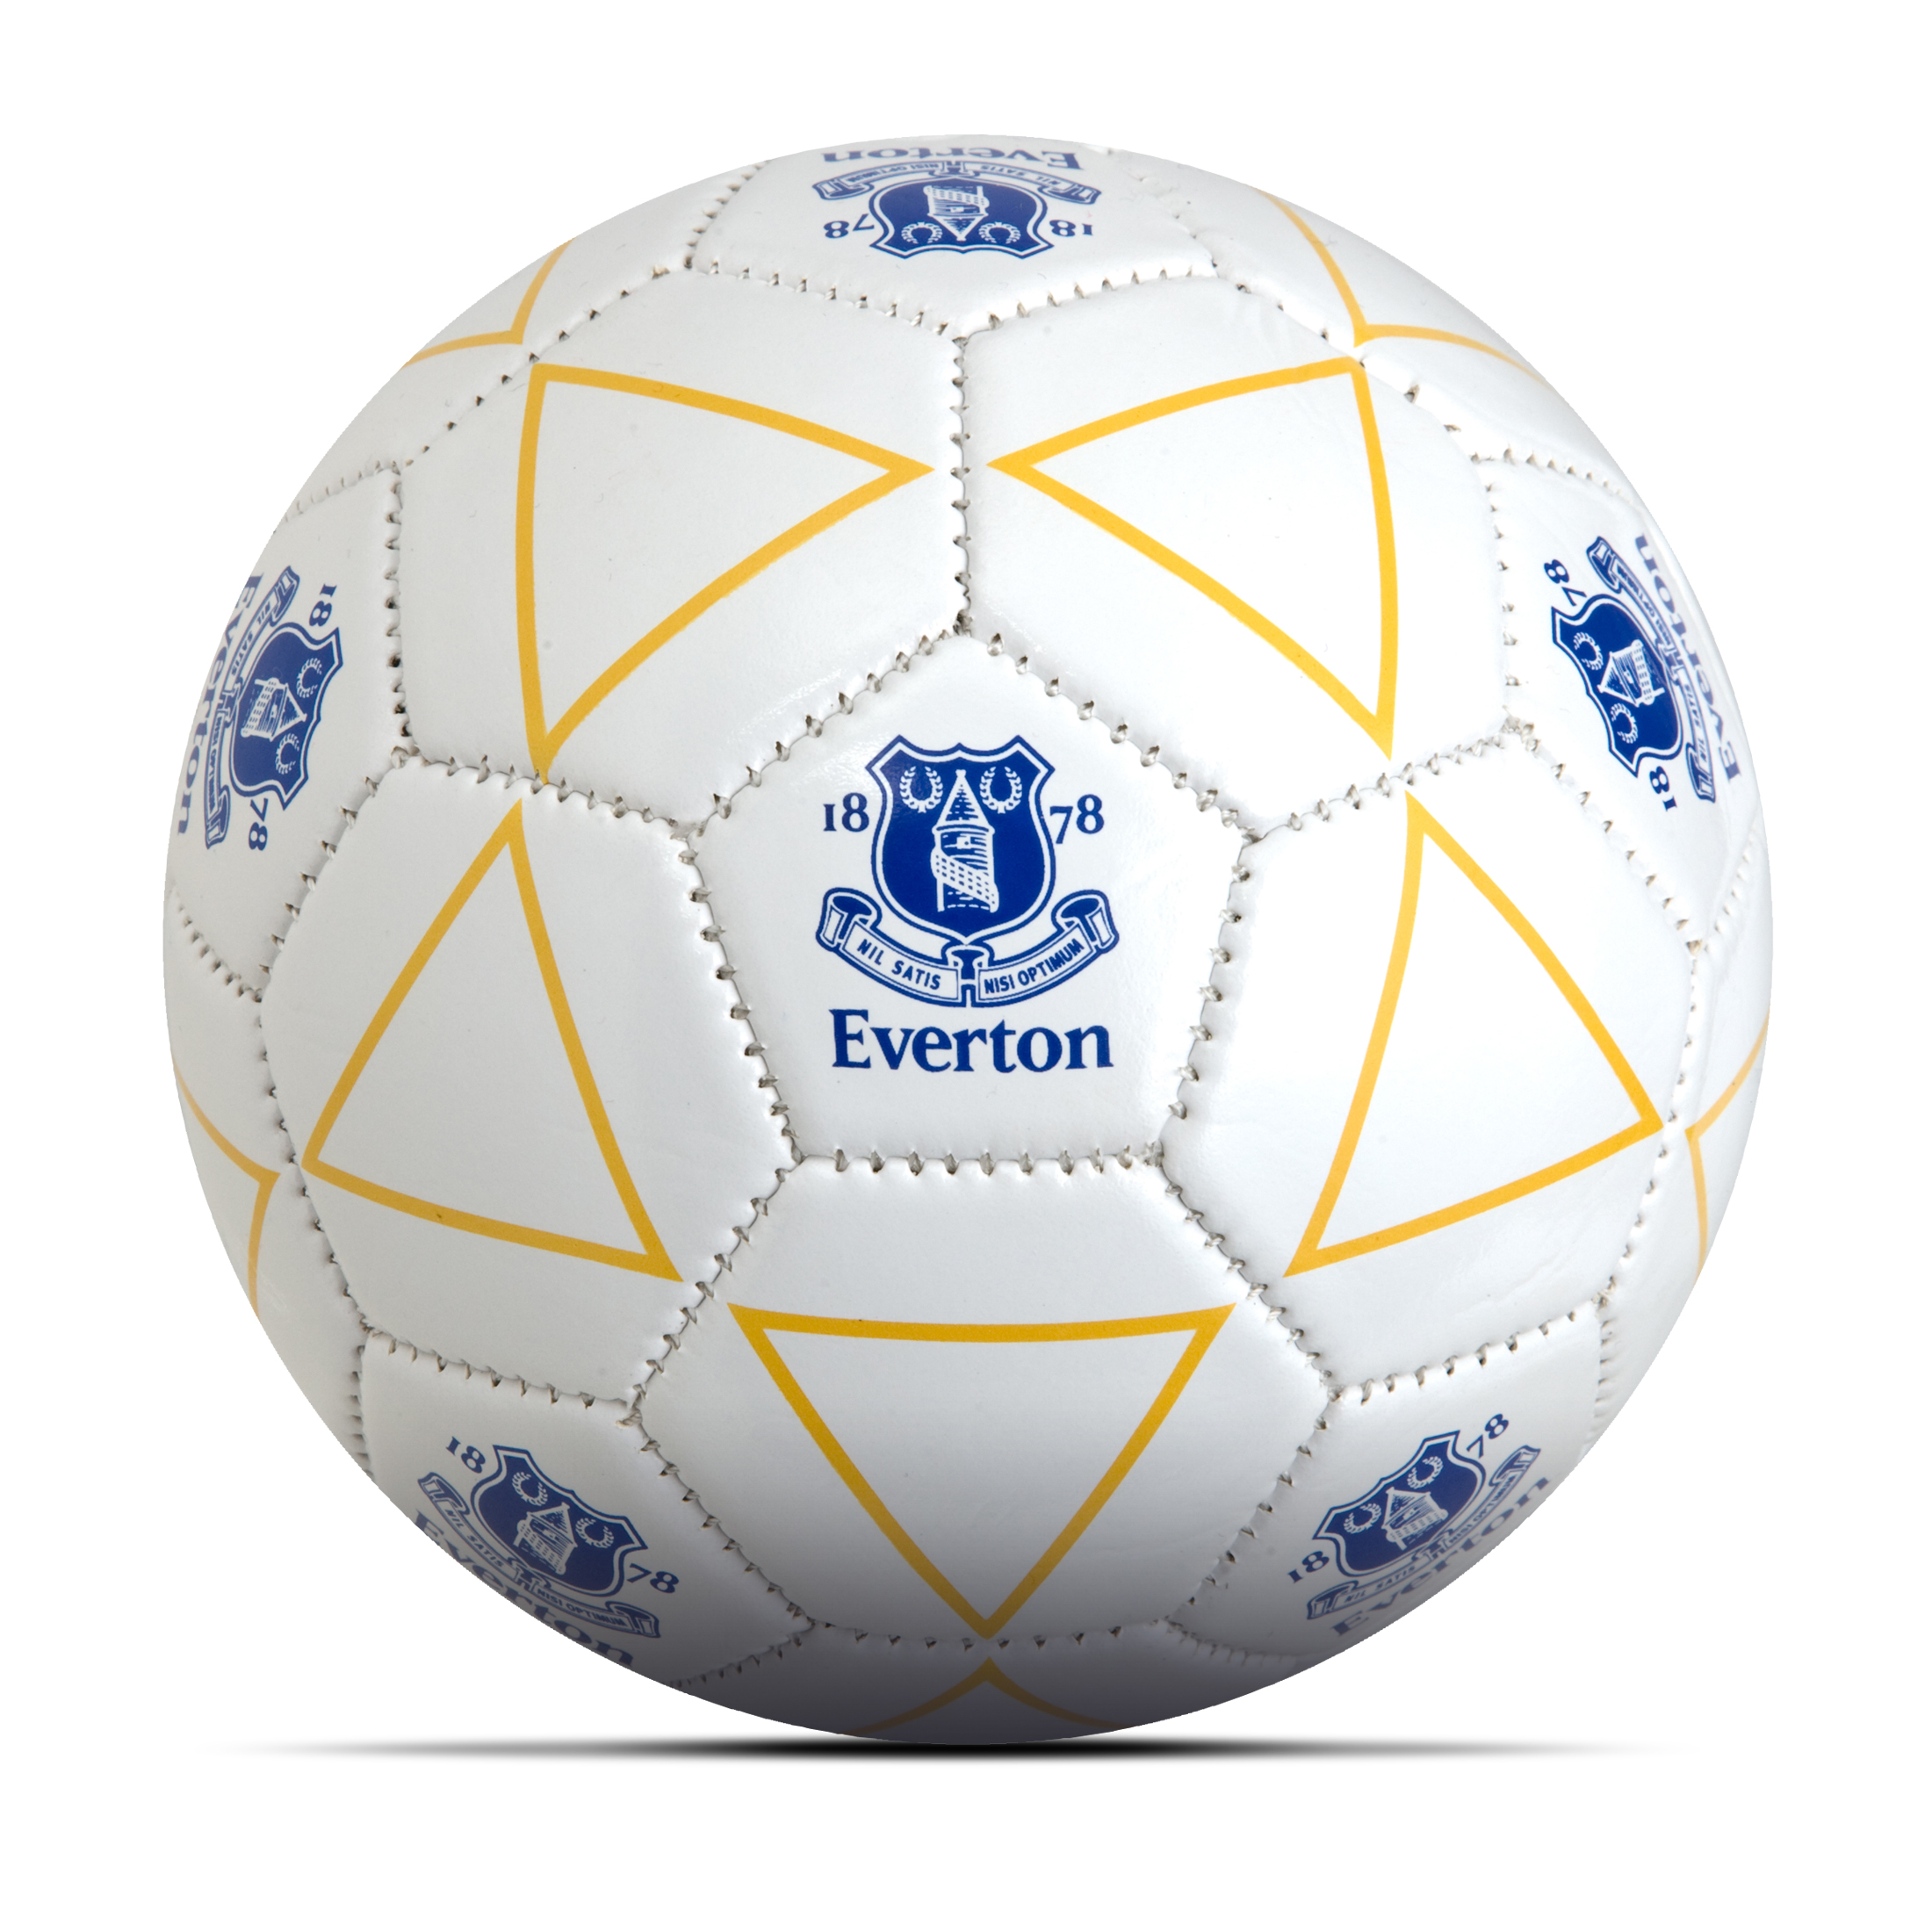 Everton Comet Football Size 2 - White